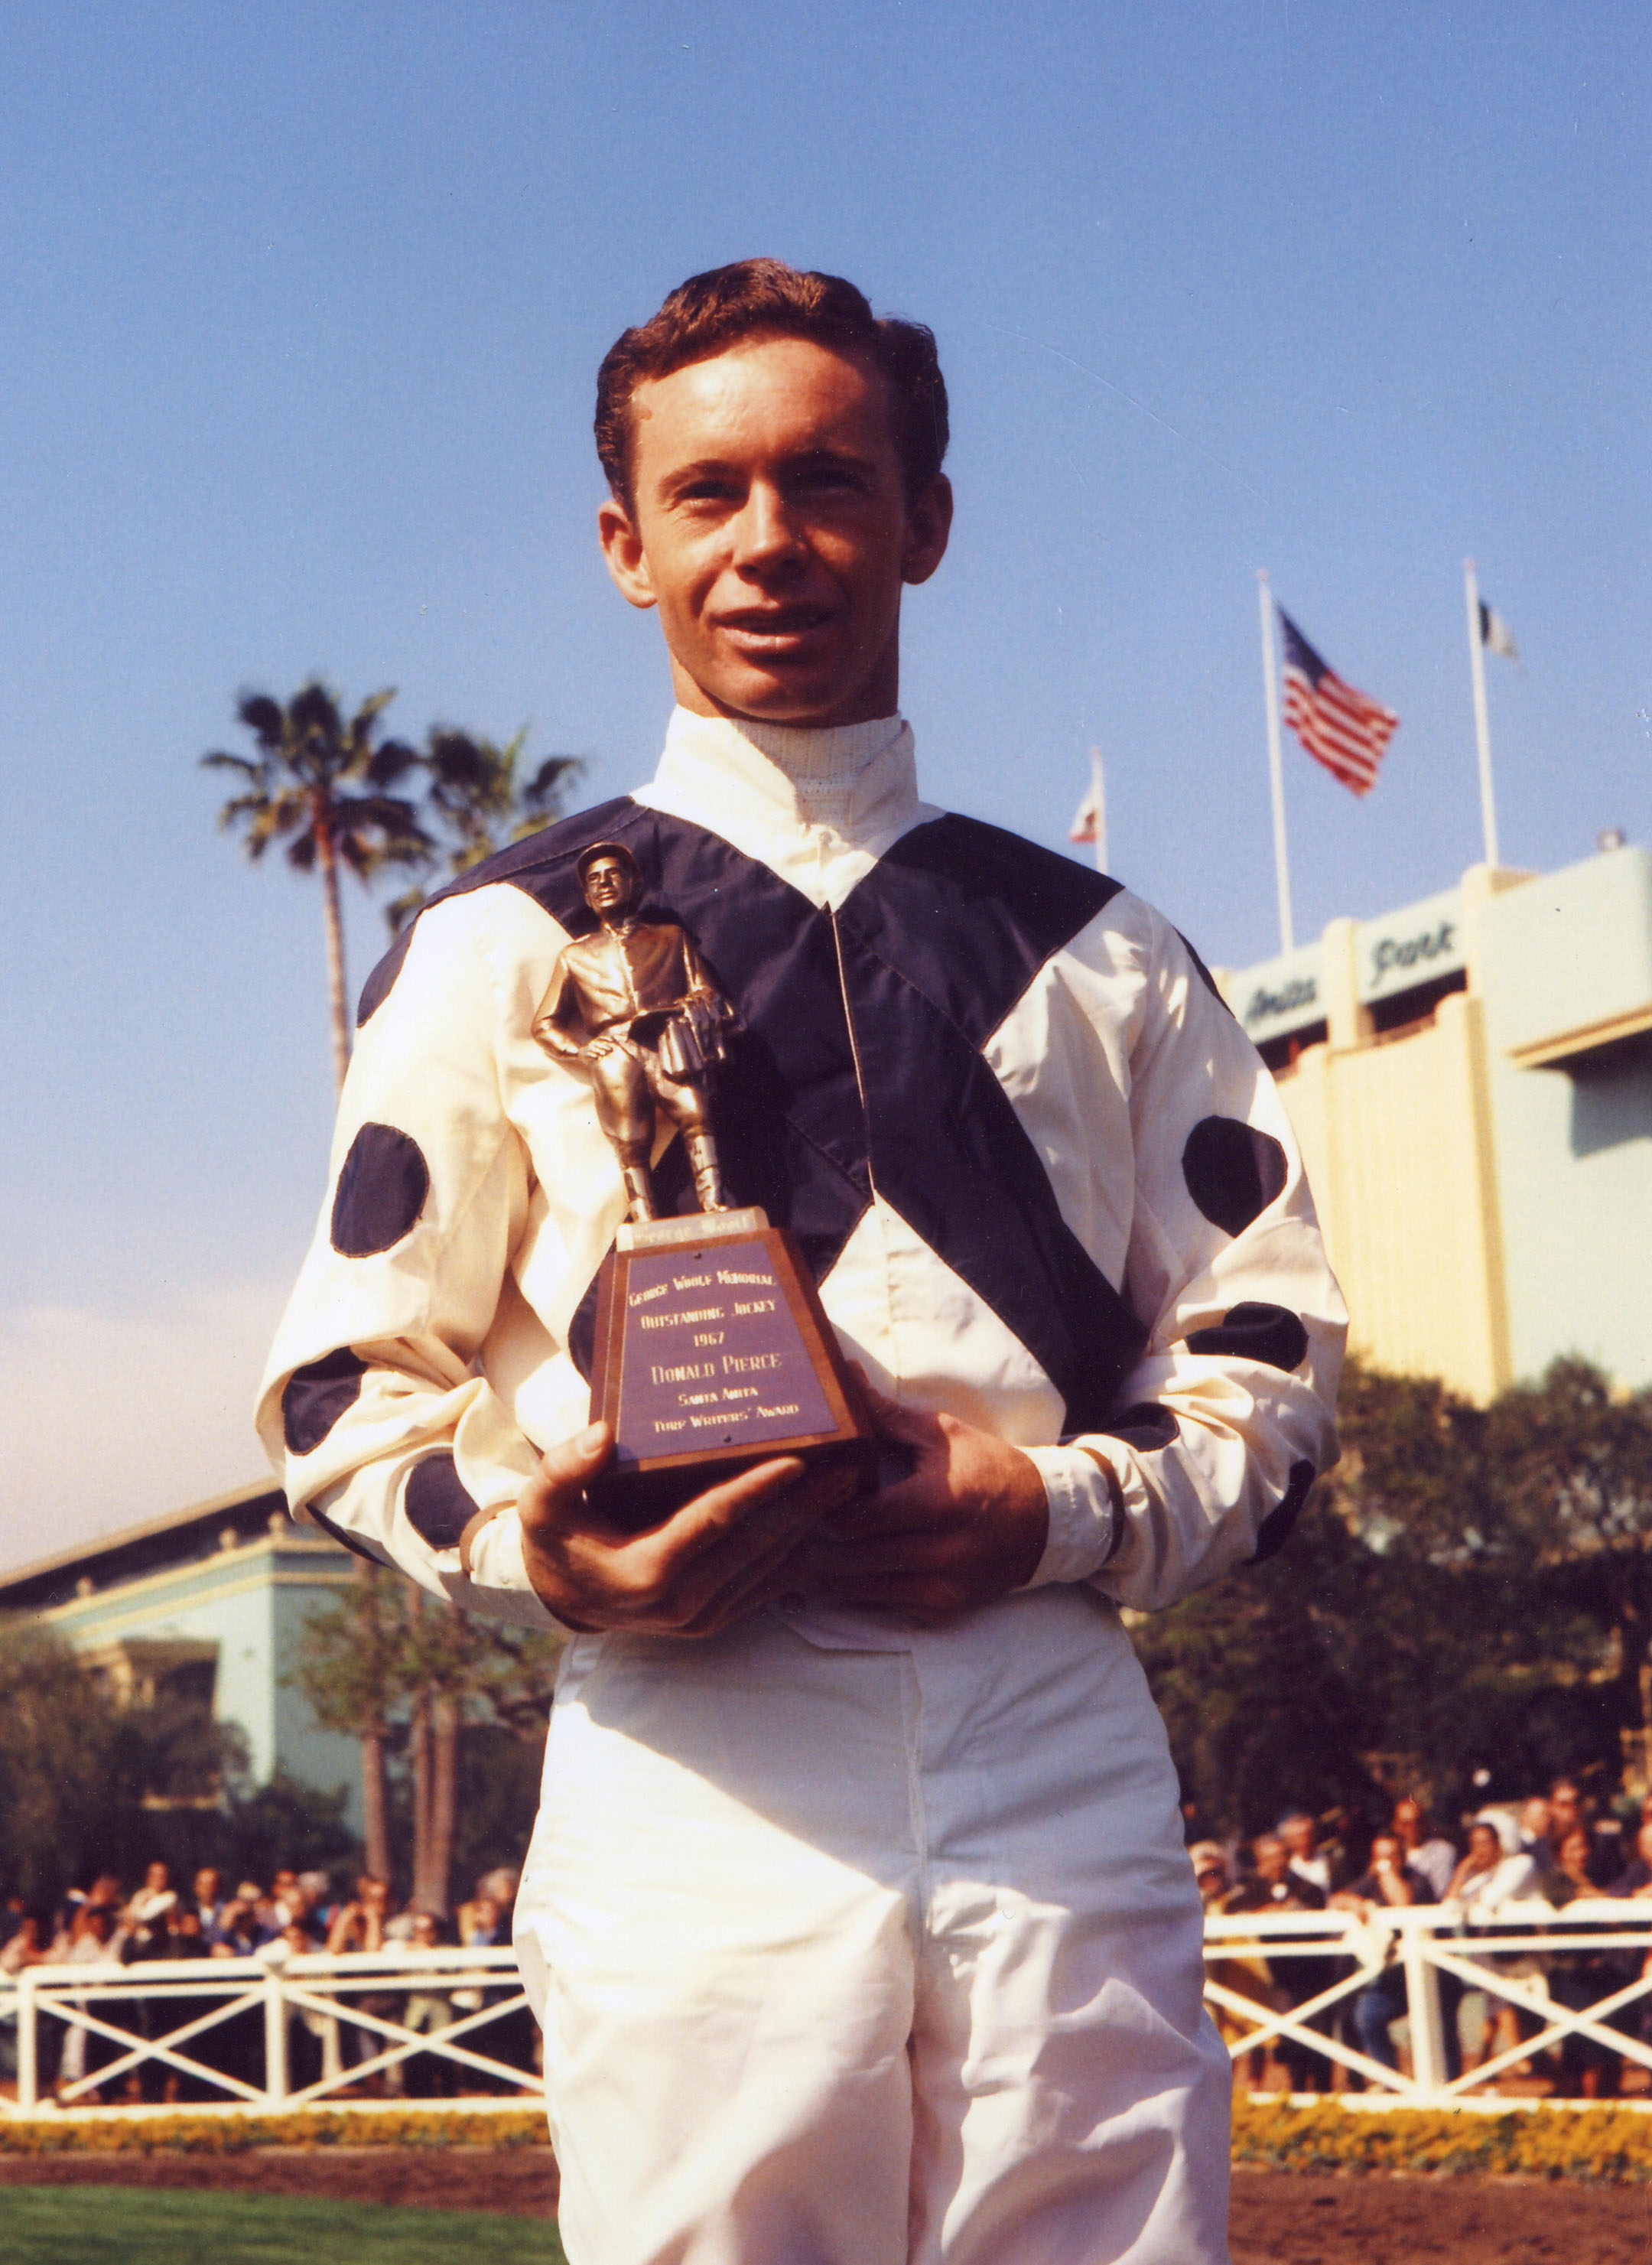 Don Pierce receives the George Woolf Memorial Award at Santa Anita, March 1967 (Bill Mochon/Museum Collection)